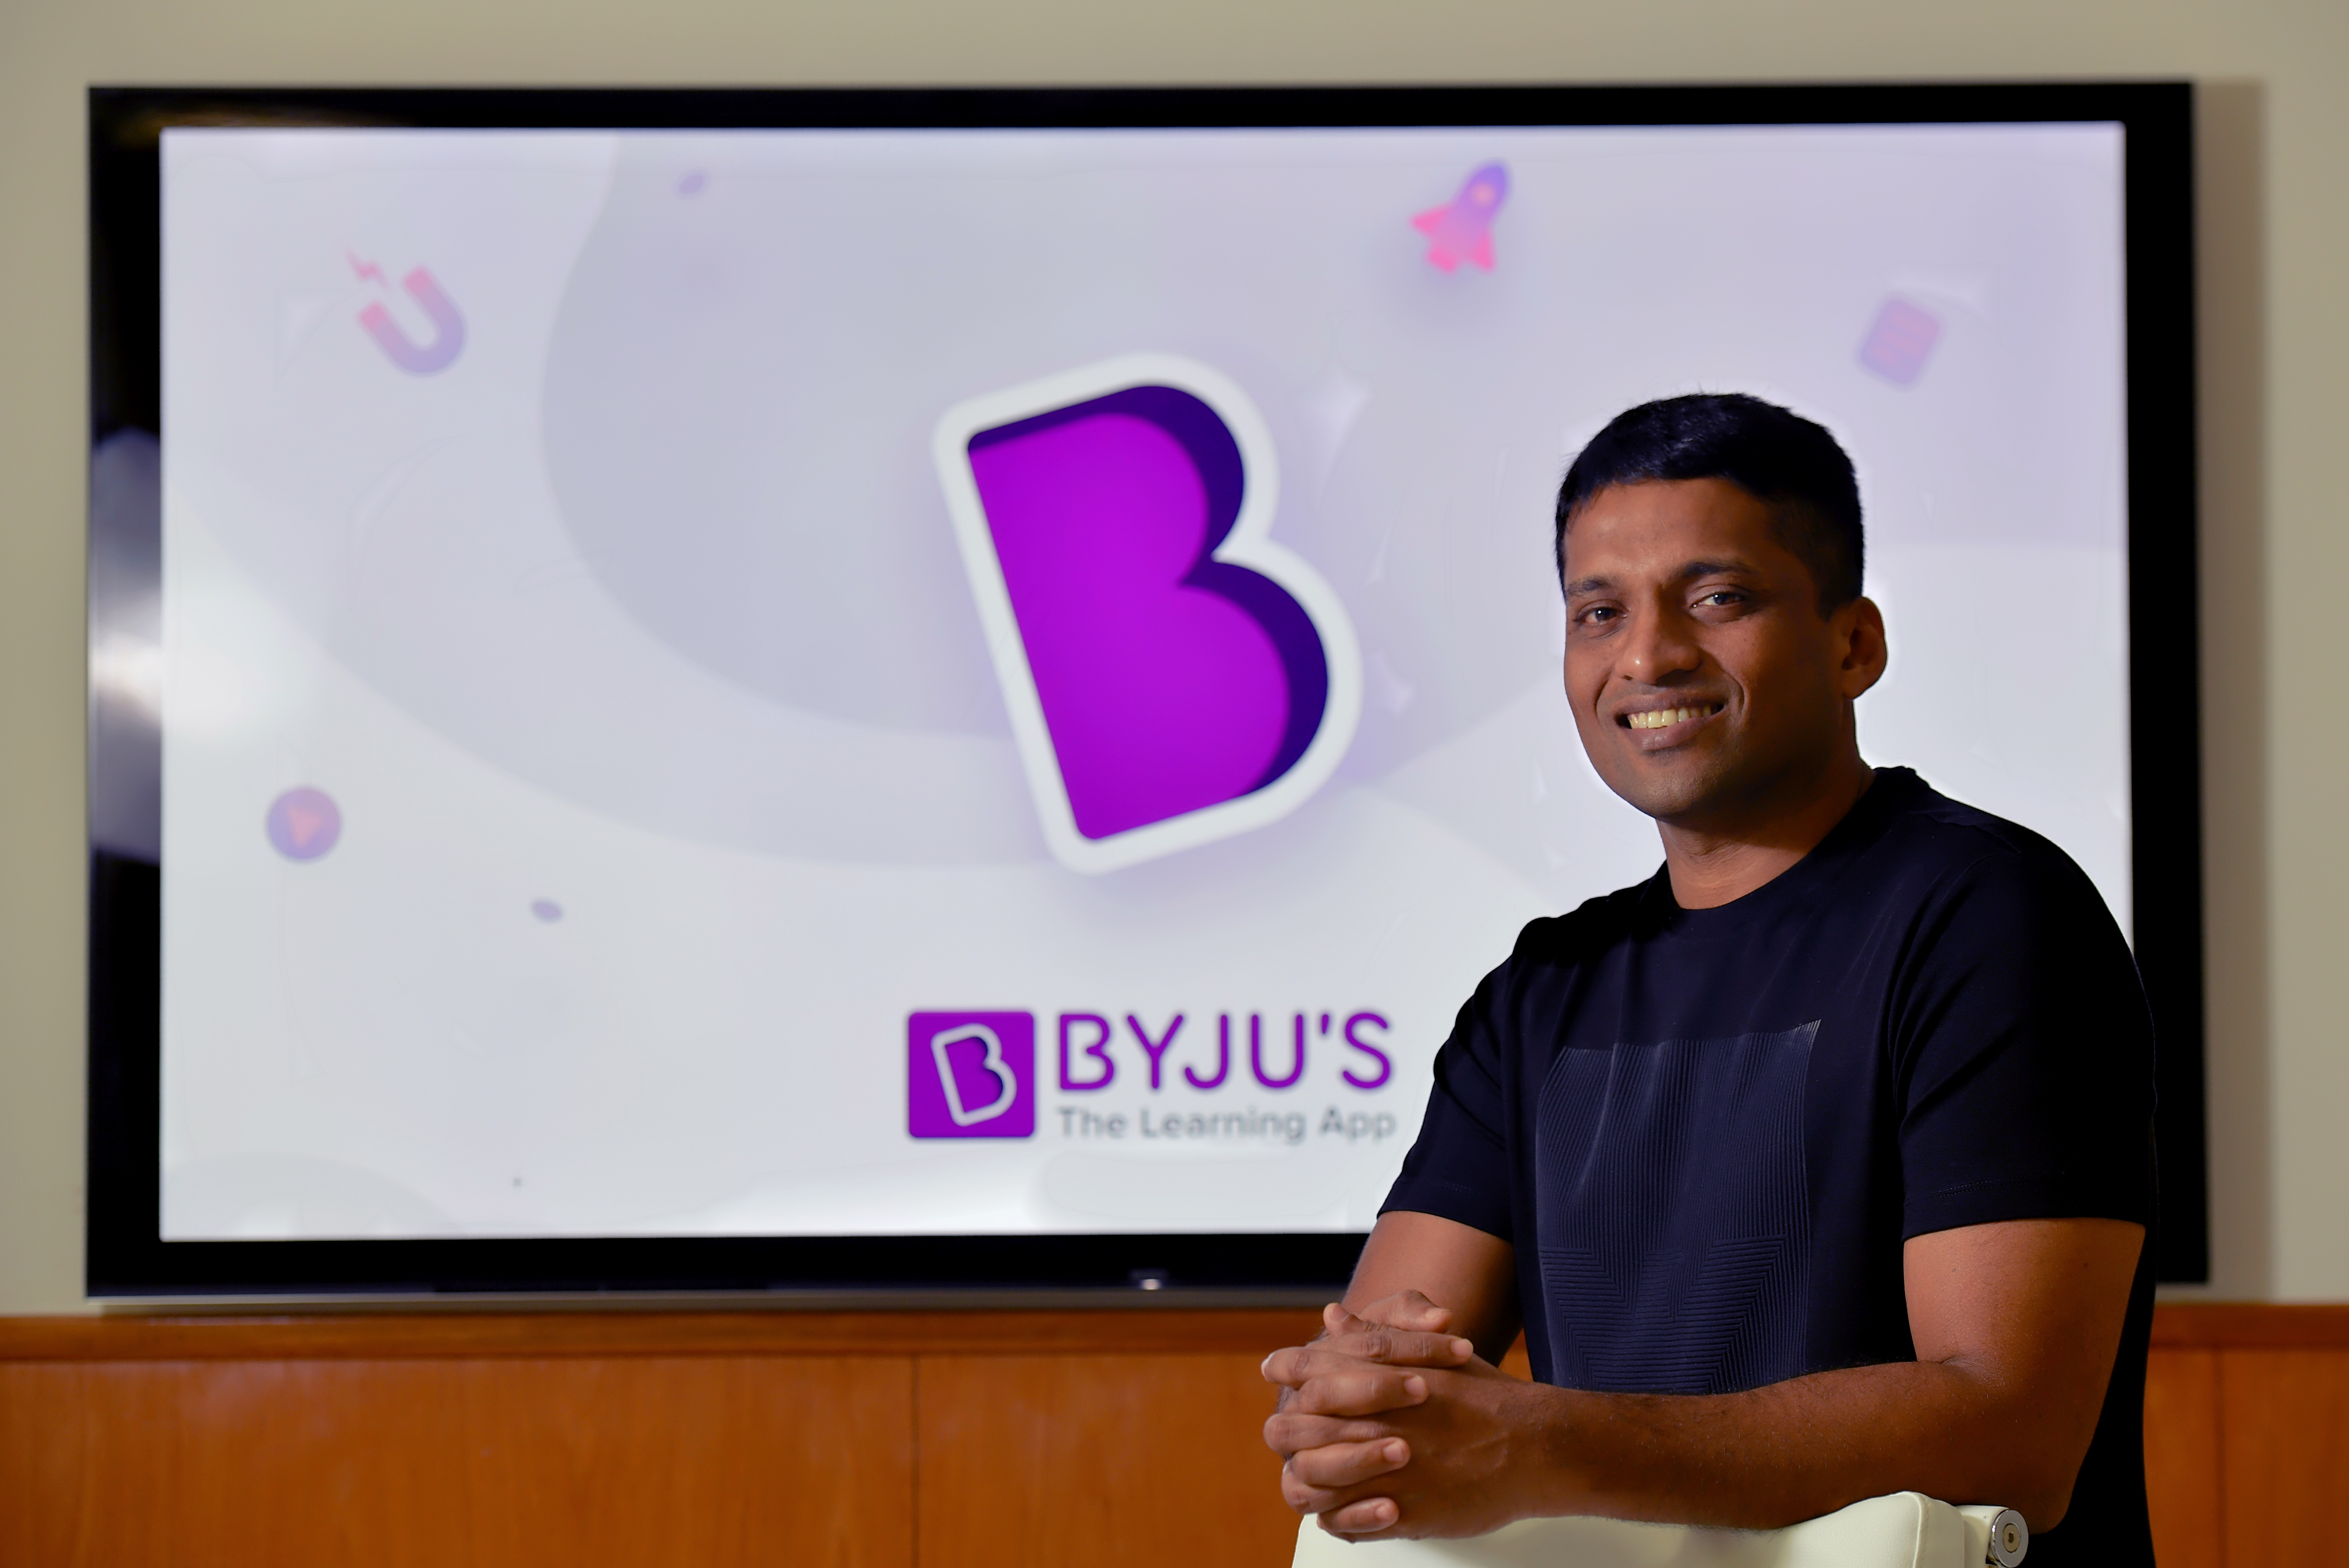 Byju's raises funds from tech investment firm Mary Meeker's VC firm BOND